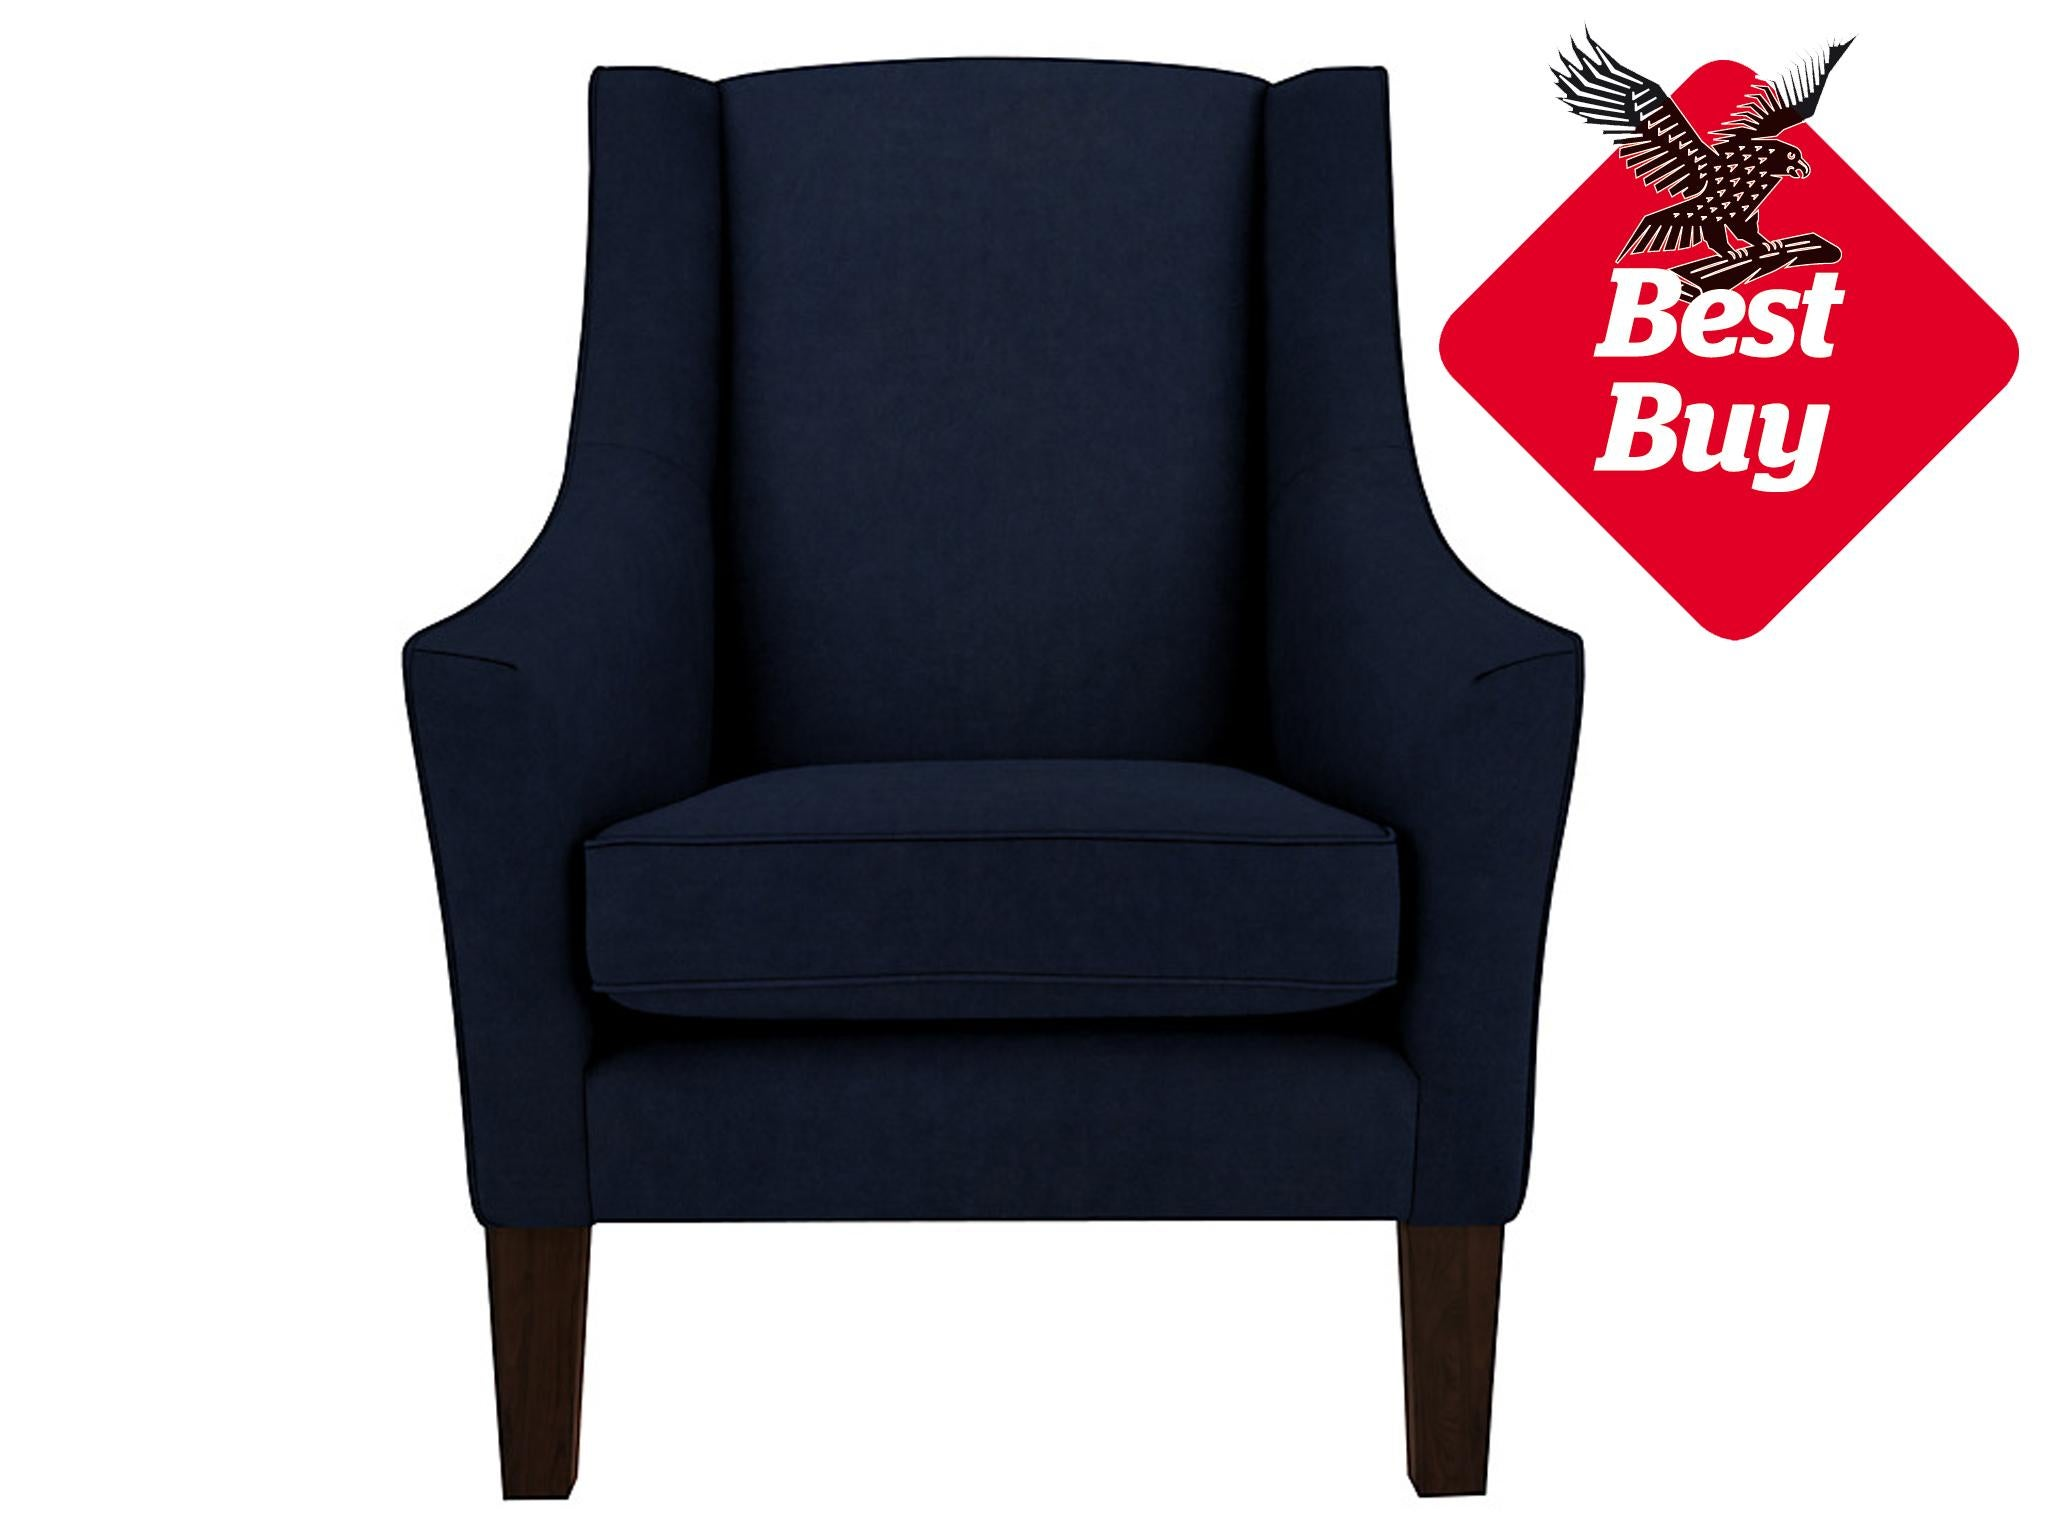 The Strong Silhouette Of The Mario Armchair Is Its Stand Out Feature U2013 Its  Flared Arms And High Back Look Particularly Striking Upholstered In An Inky  Blue.